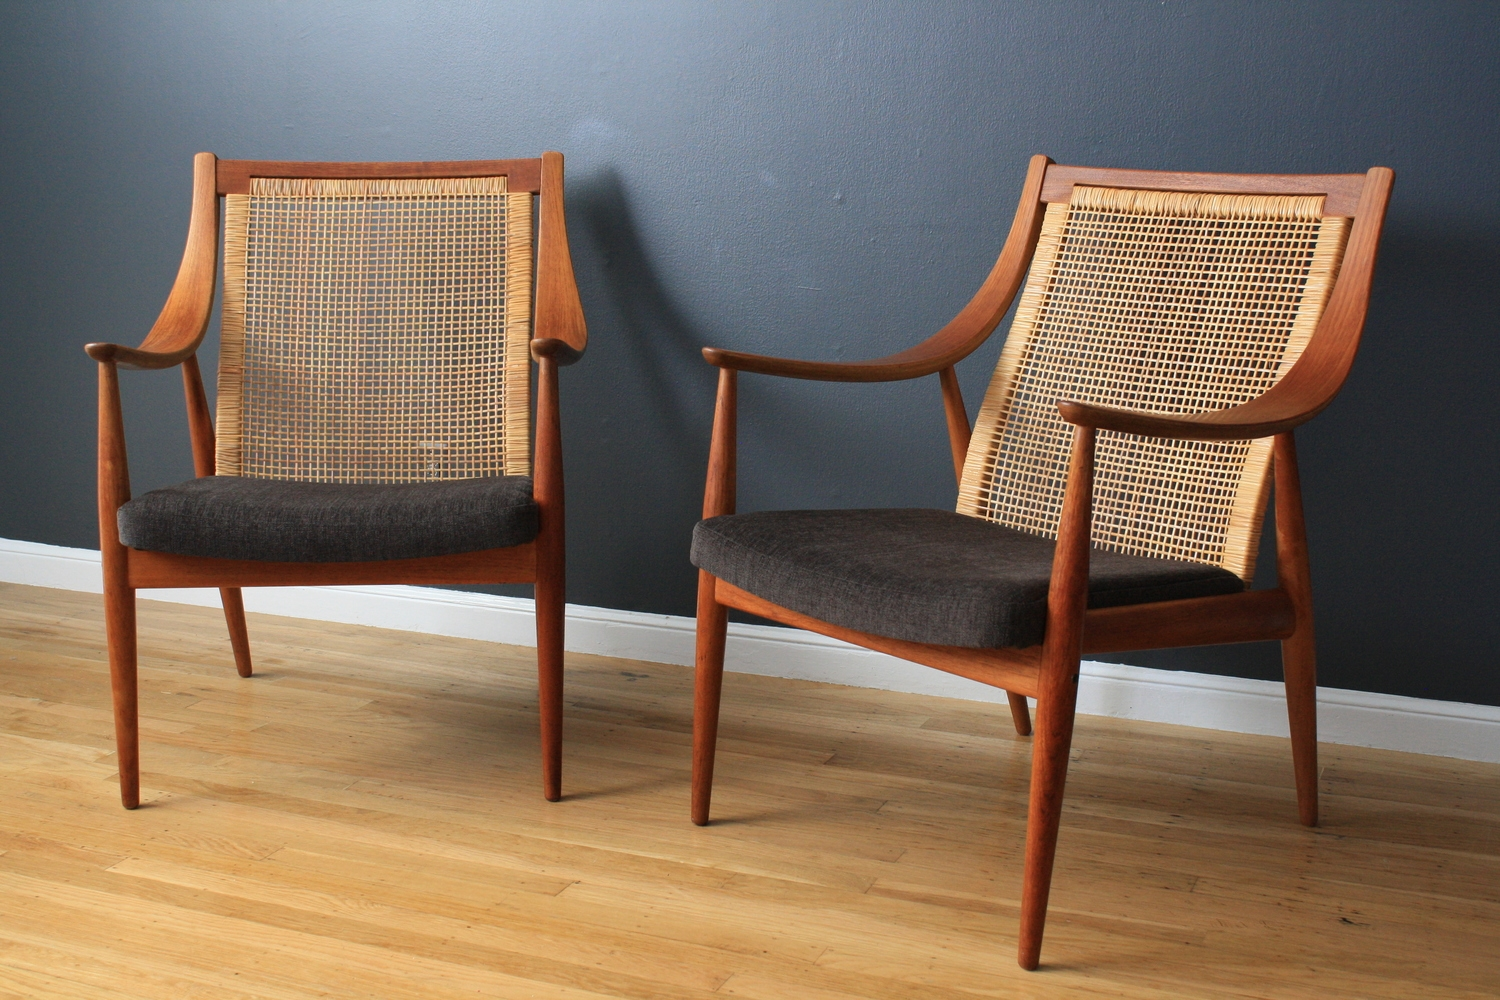 Pair of Vintage Peter Hvidt Lounge Chairs